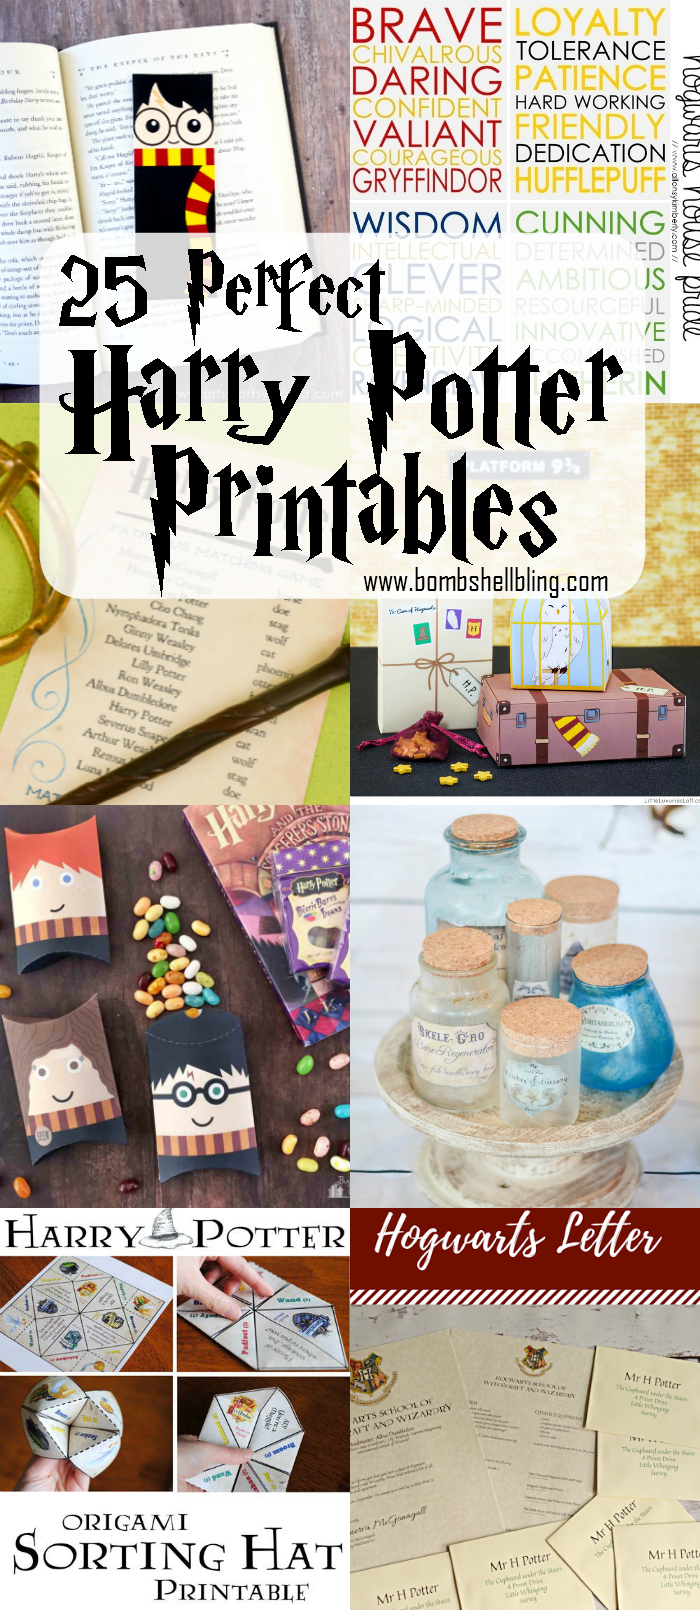 picture regarding Hogwarts Printable referred to as 25 Great Harry Potter Printables - Gathered by way of Bombs